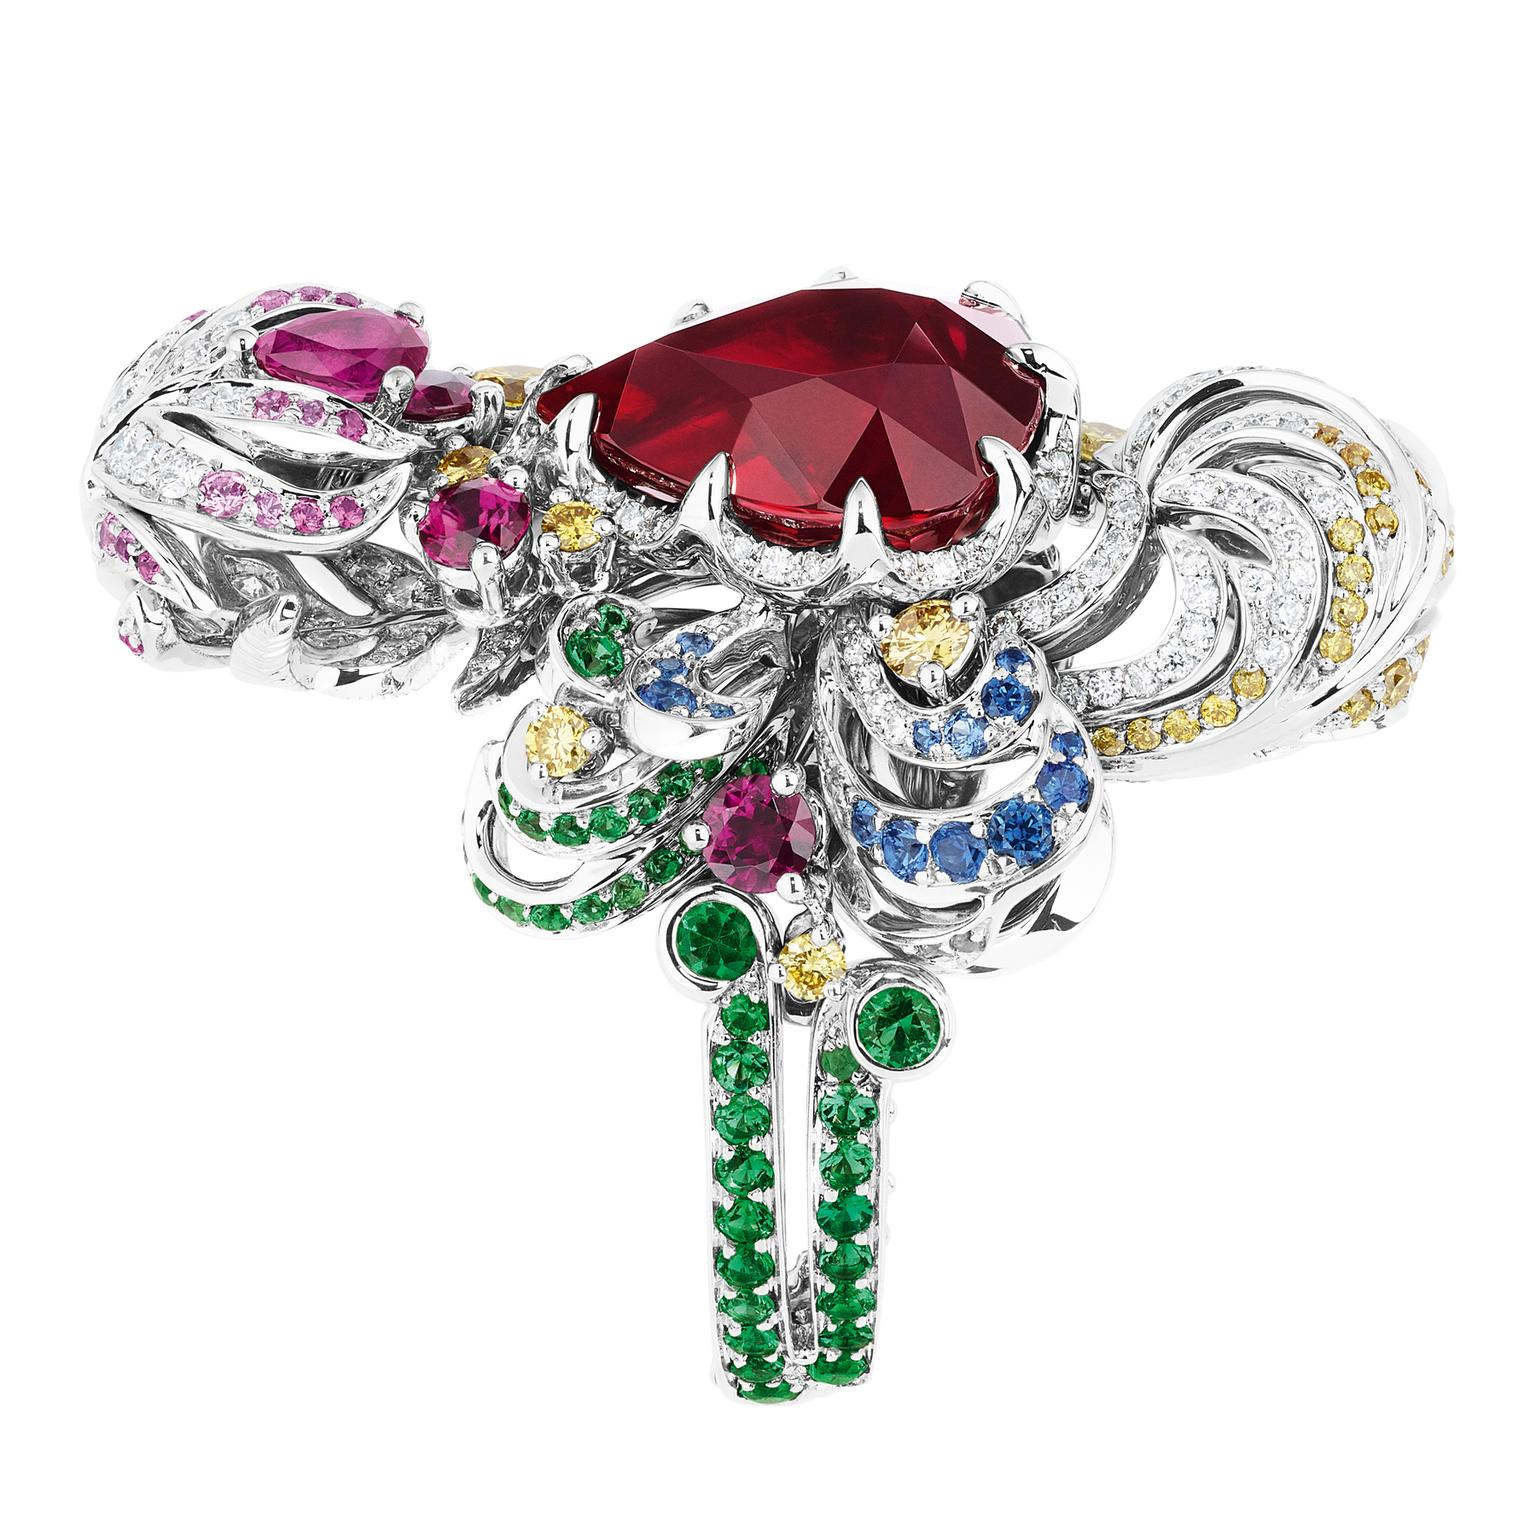 Dior Ruby Nymphs Bath ring